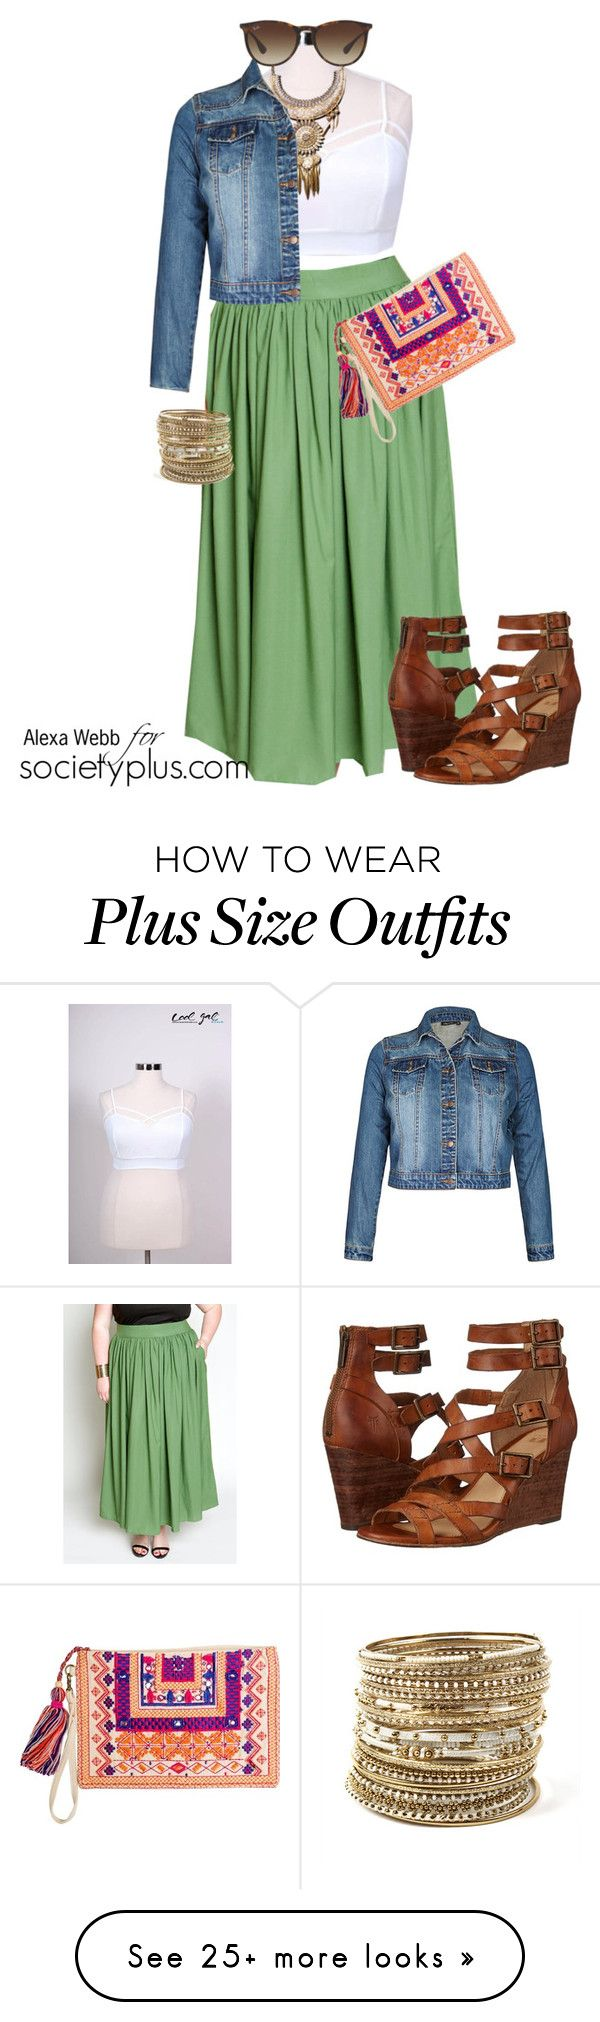 """""""Plus Size Boho Skirt - Alexa Webb for Society+"""" by iamsocietyplus on Polyvore featuring City Chic, Frye, Amrita Singh, Ray-Ban, women's clothing, women, female, woman, misses and juniors"""